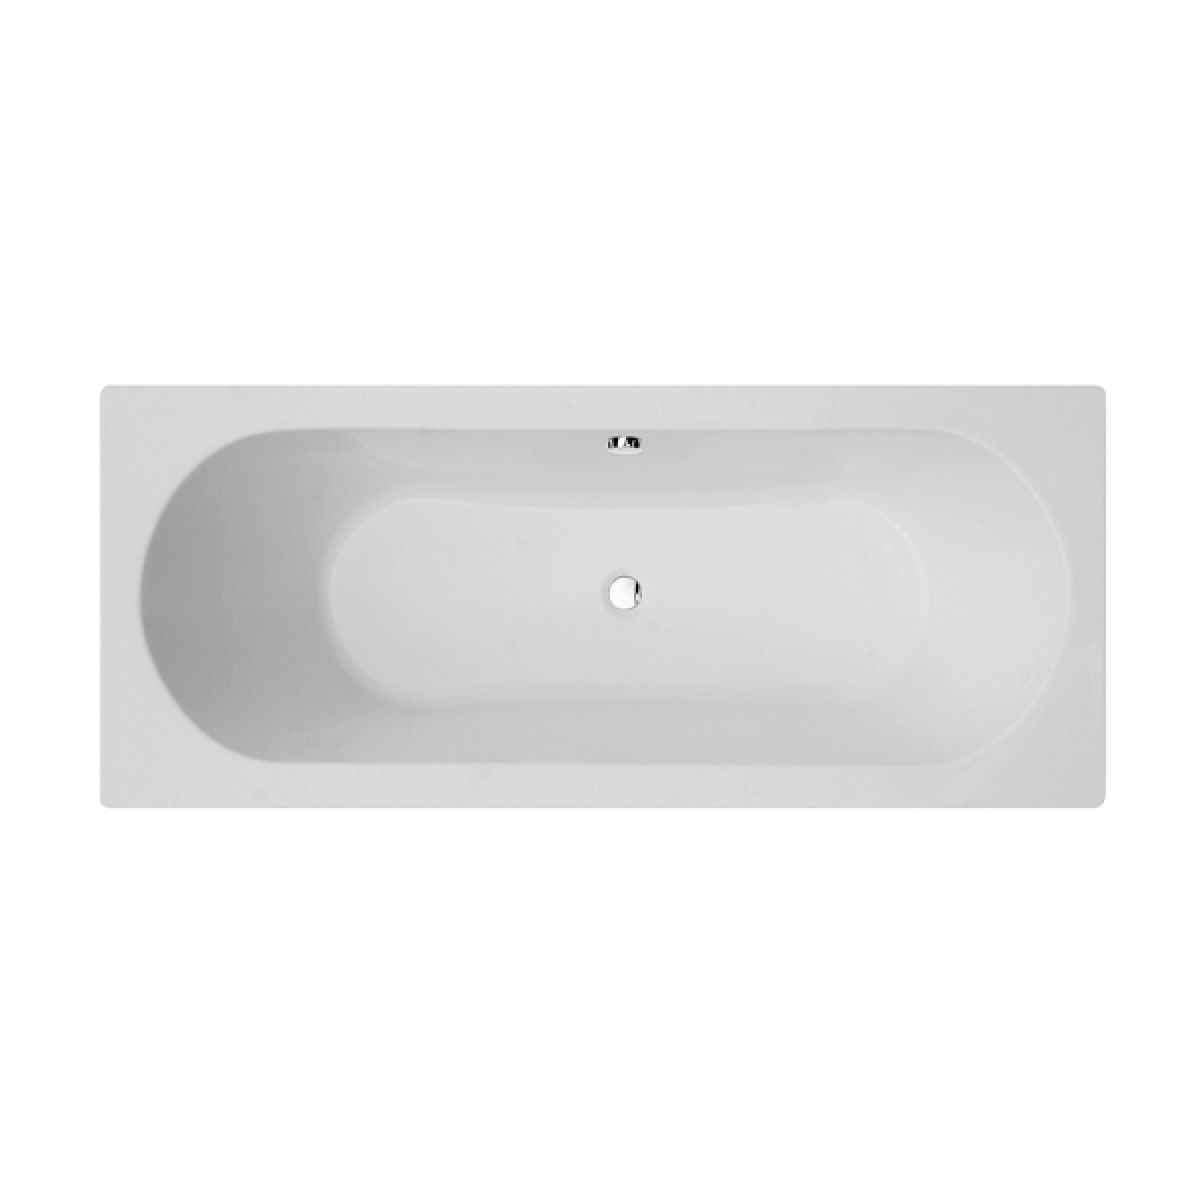 Frontline Duo Luxury Double Ended Bath